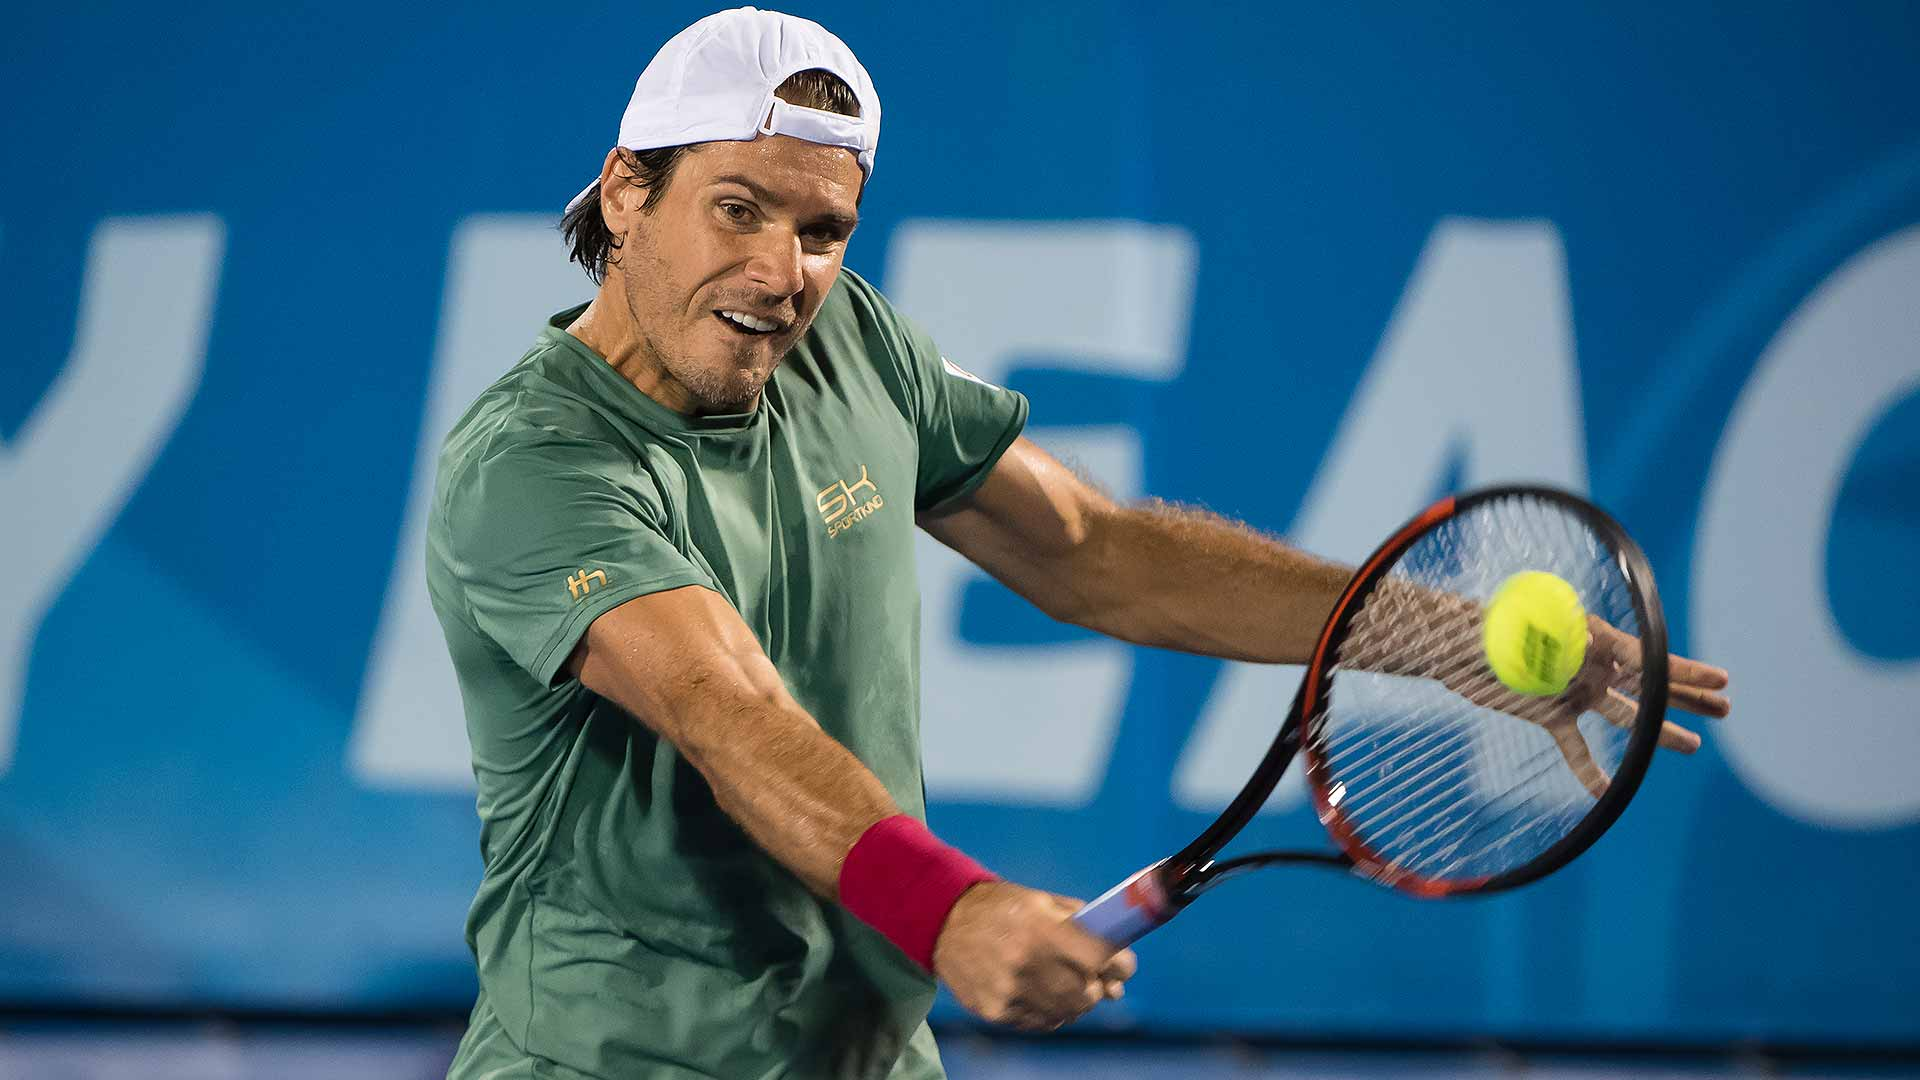 Tommy Haas Feels Good Despite Delray Beach Outcome